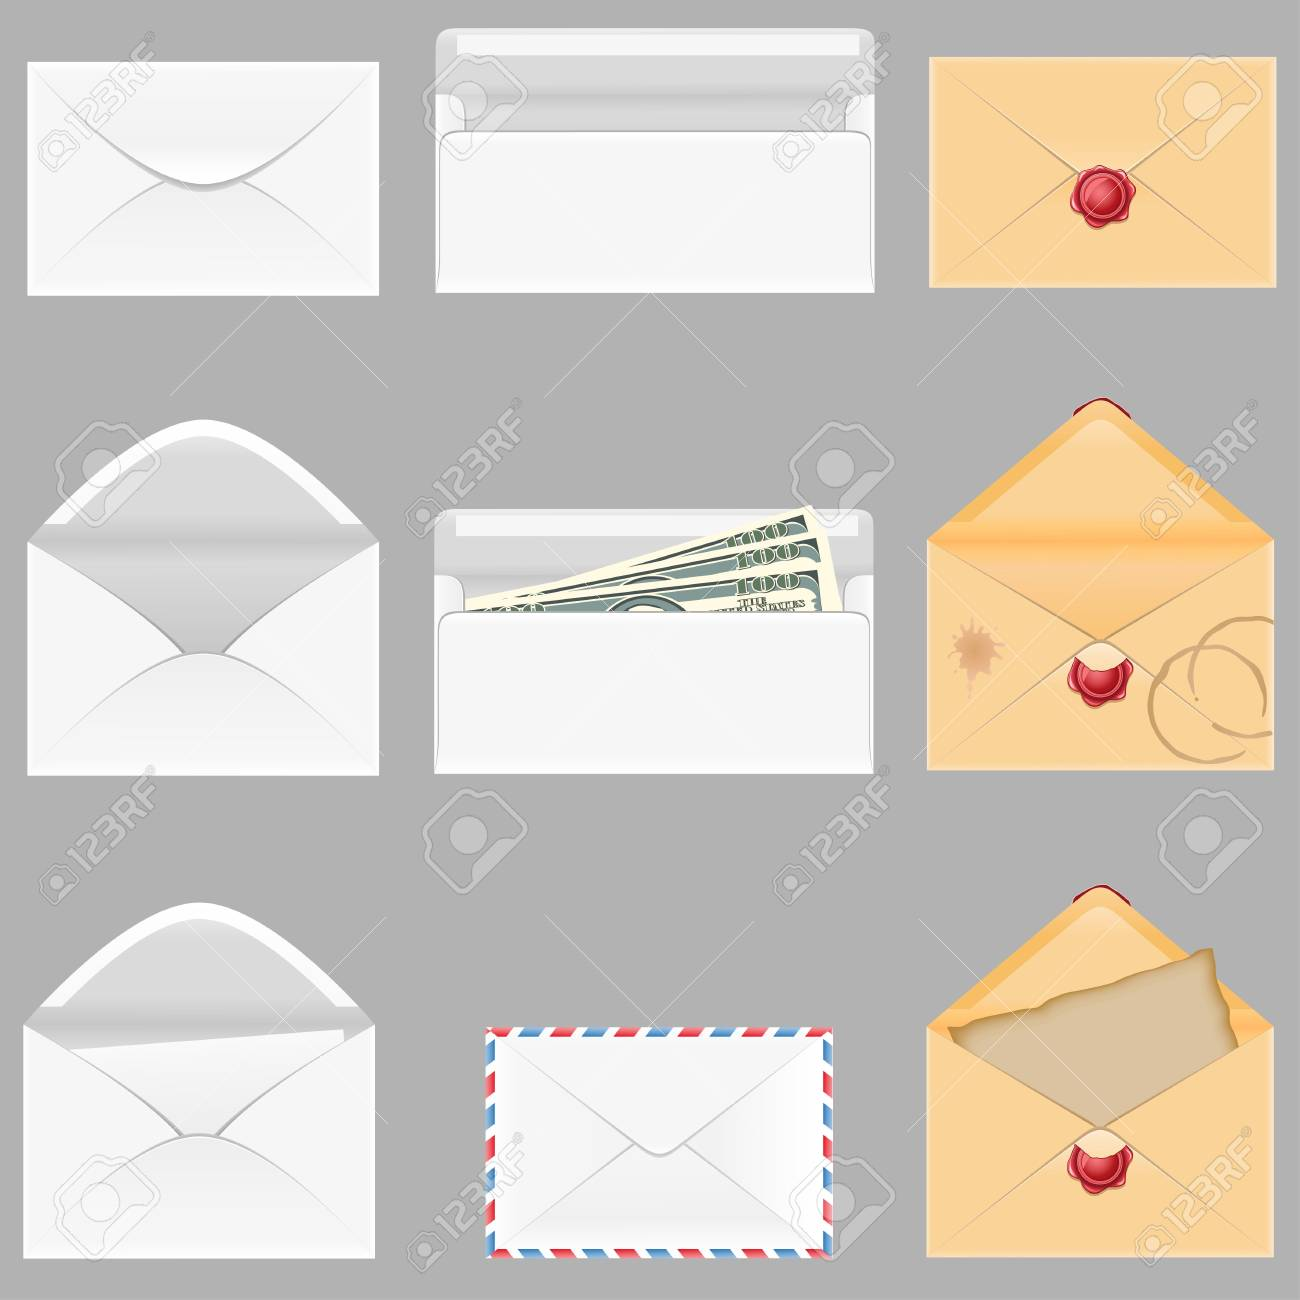 set icons paper envelopes illustration isolated on gray background Stock Illustration - 16445770